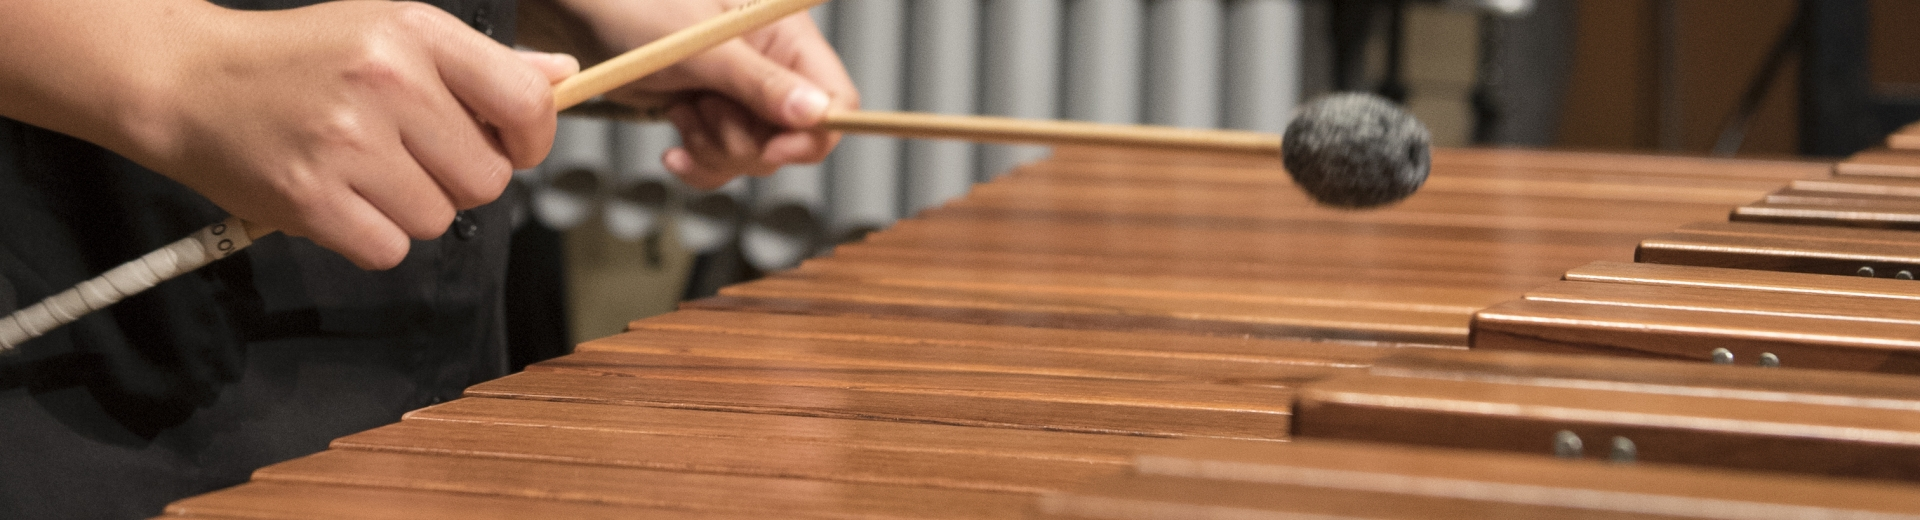 Close up photo of student's hands with soft mallets hitting marimba keys.